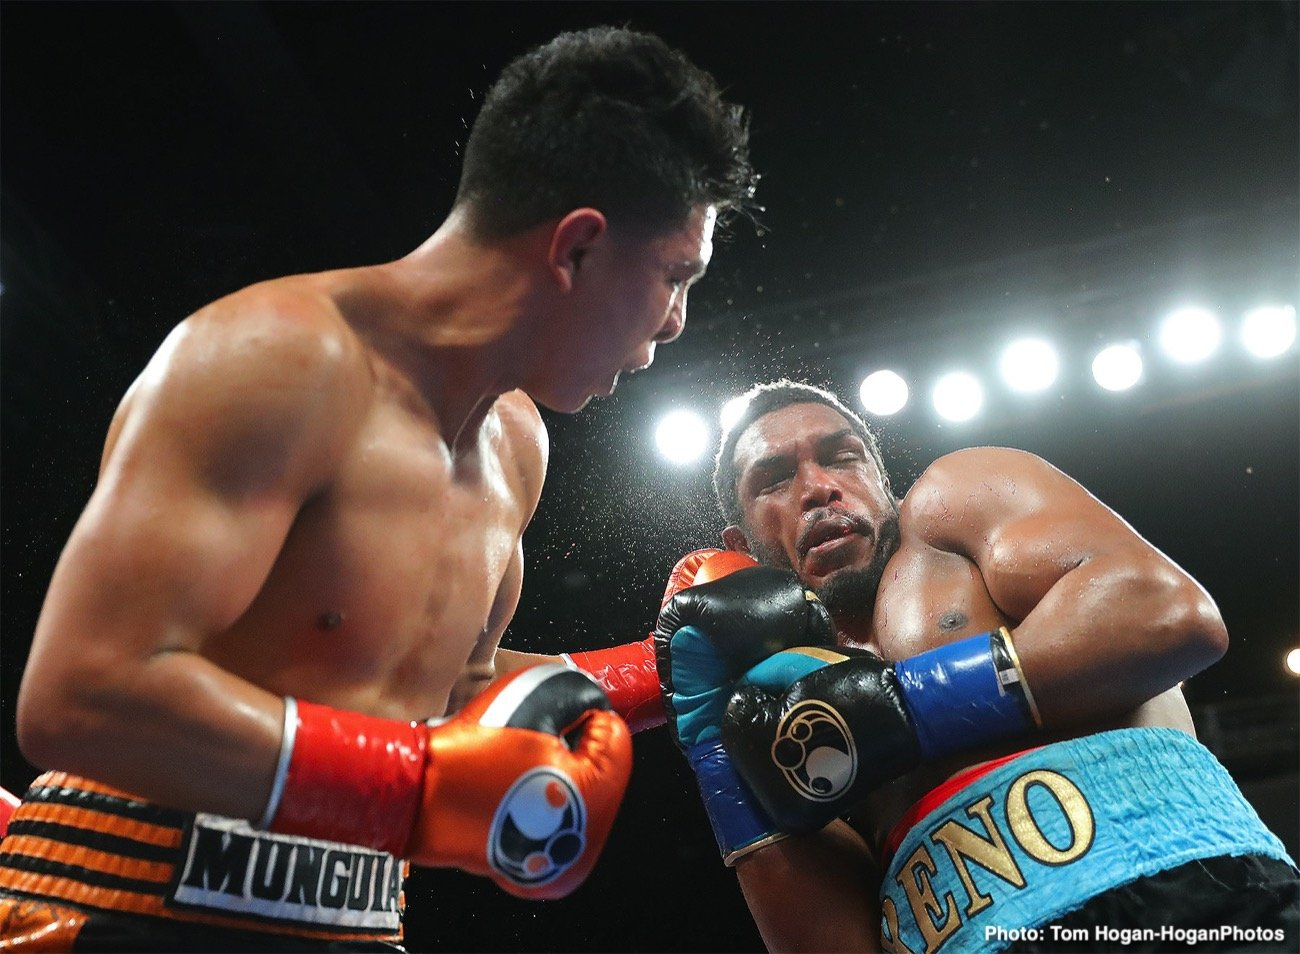 Jaime Munguia, Tureano Johnson - Former WBO junior middleweight champion Jaime Munguia (36-0, 29 KOs) got the win on Friday night in stopping middleweight contender Tureano Johnson (21-3-1, 15 KOs) in the sixth round after he suffered a cut lip. The match was shown on DAZN and it took place at the Fantasy Springs in Indio, California.